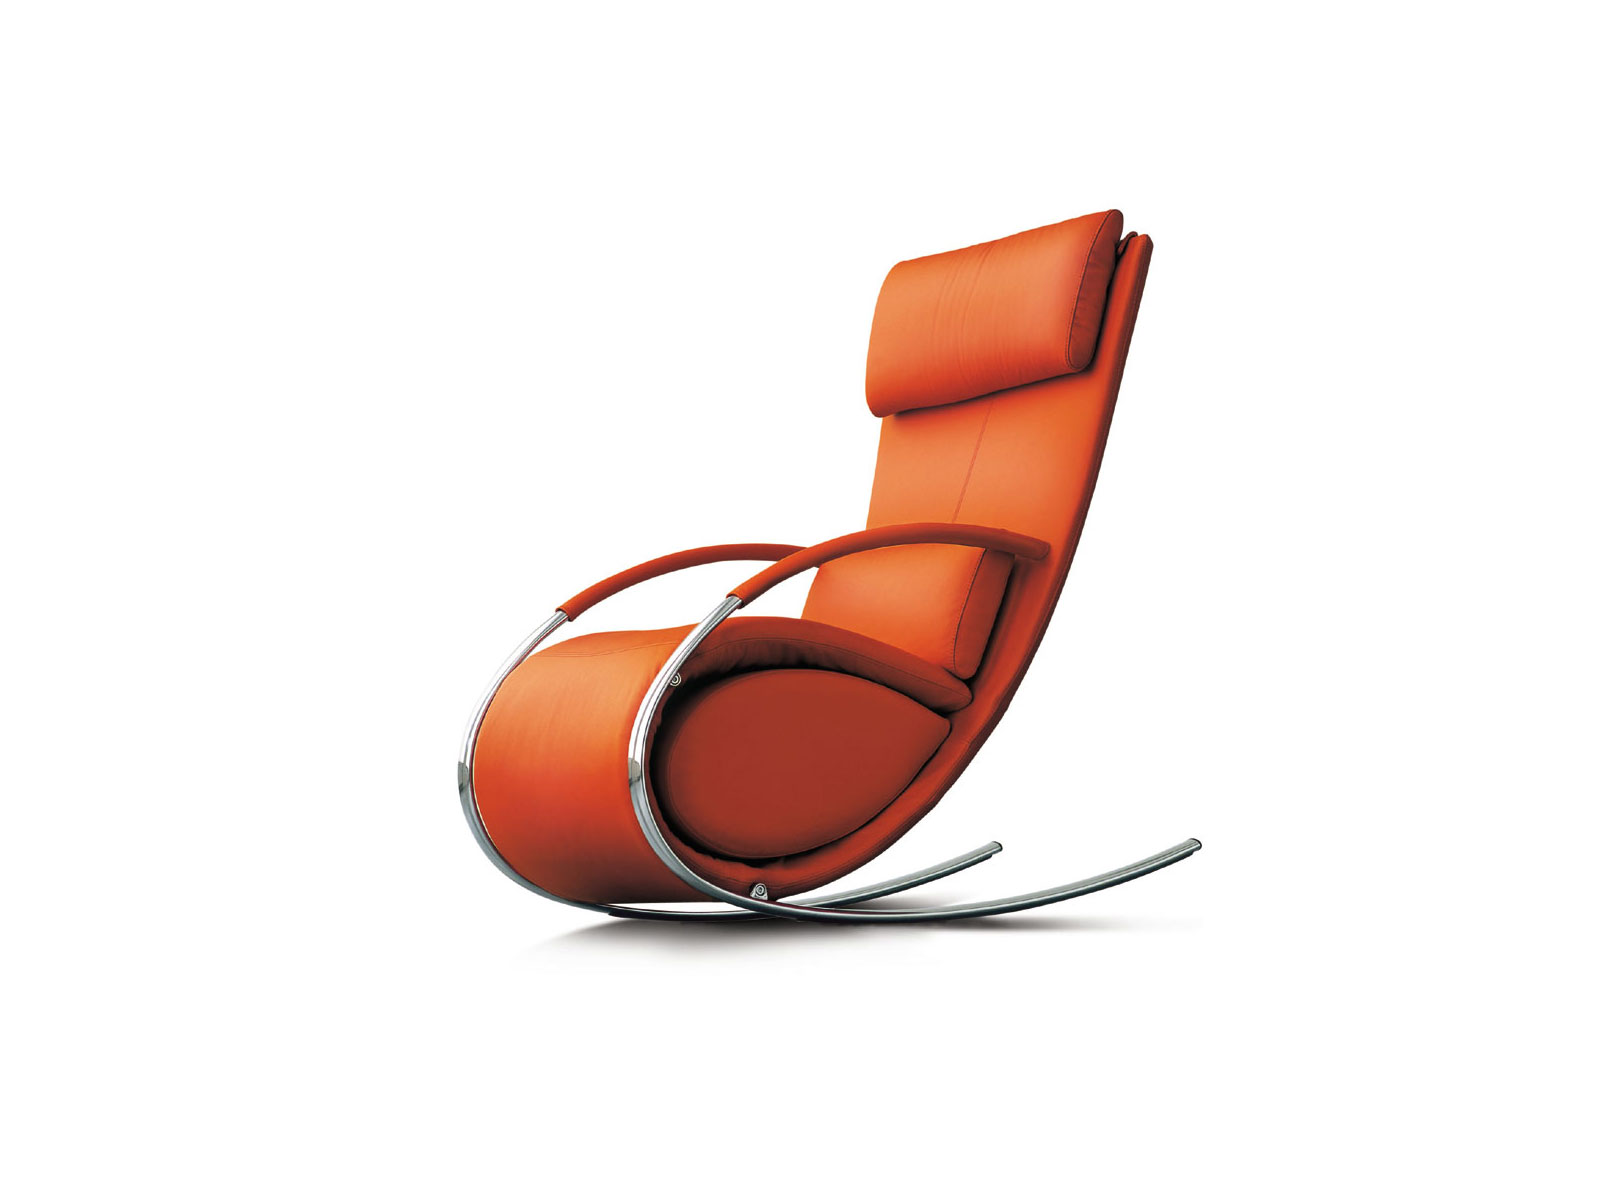 furniture-modern-chair-designs-that-modern-rocking-chair-with-the-top-of-the-foam-wrapped-leather-colored-orange-and-have-a-curved-legs-from-iron-modern-armchair-design-ideas